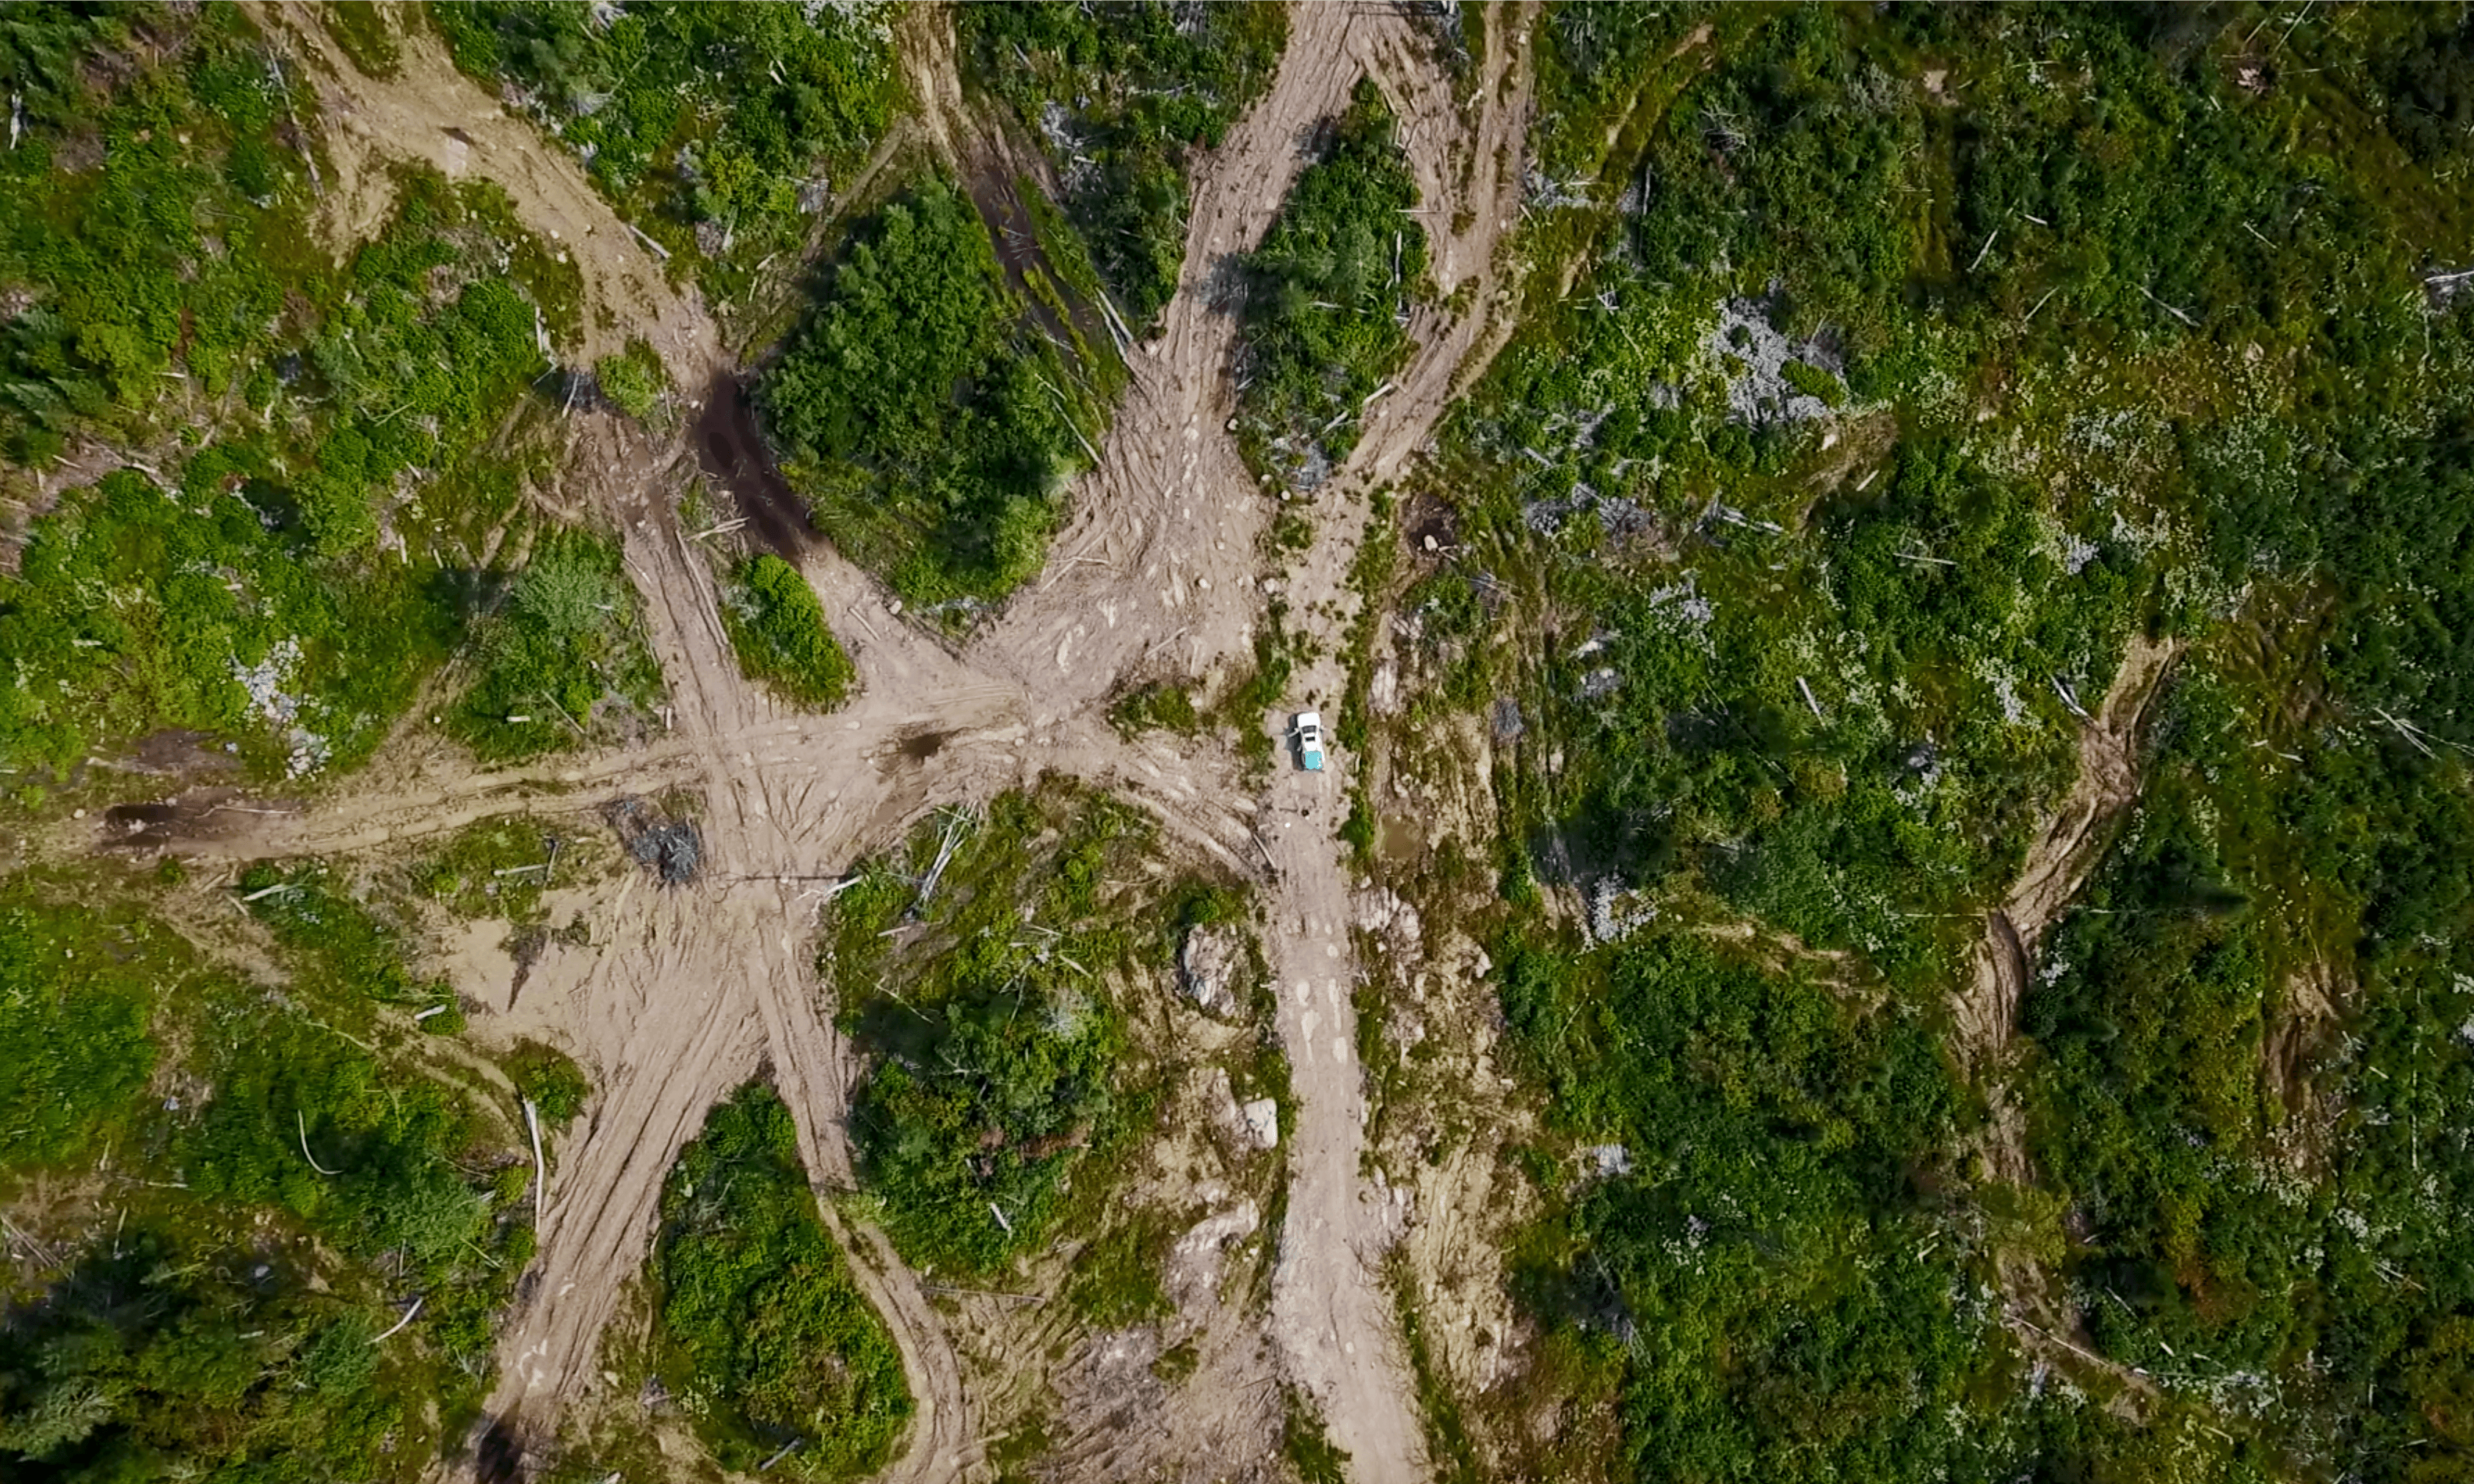 Long-term damage from logging hits ability of Canada's forests to regenerate